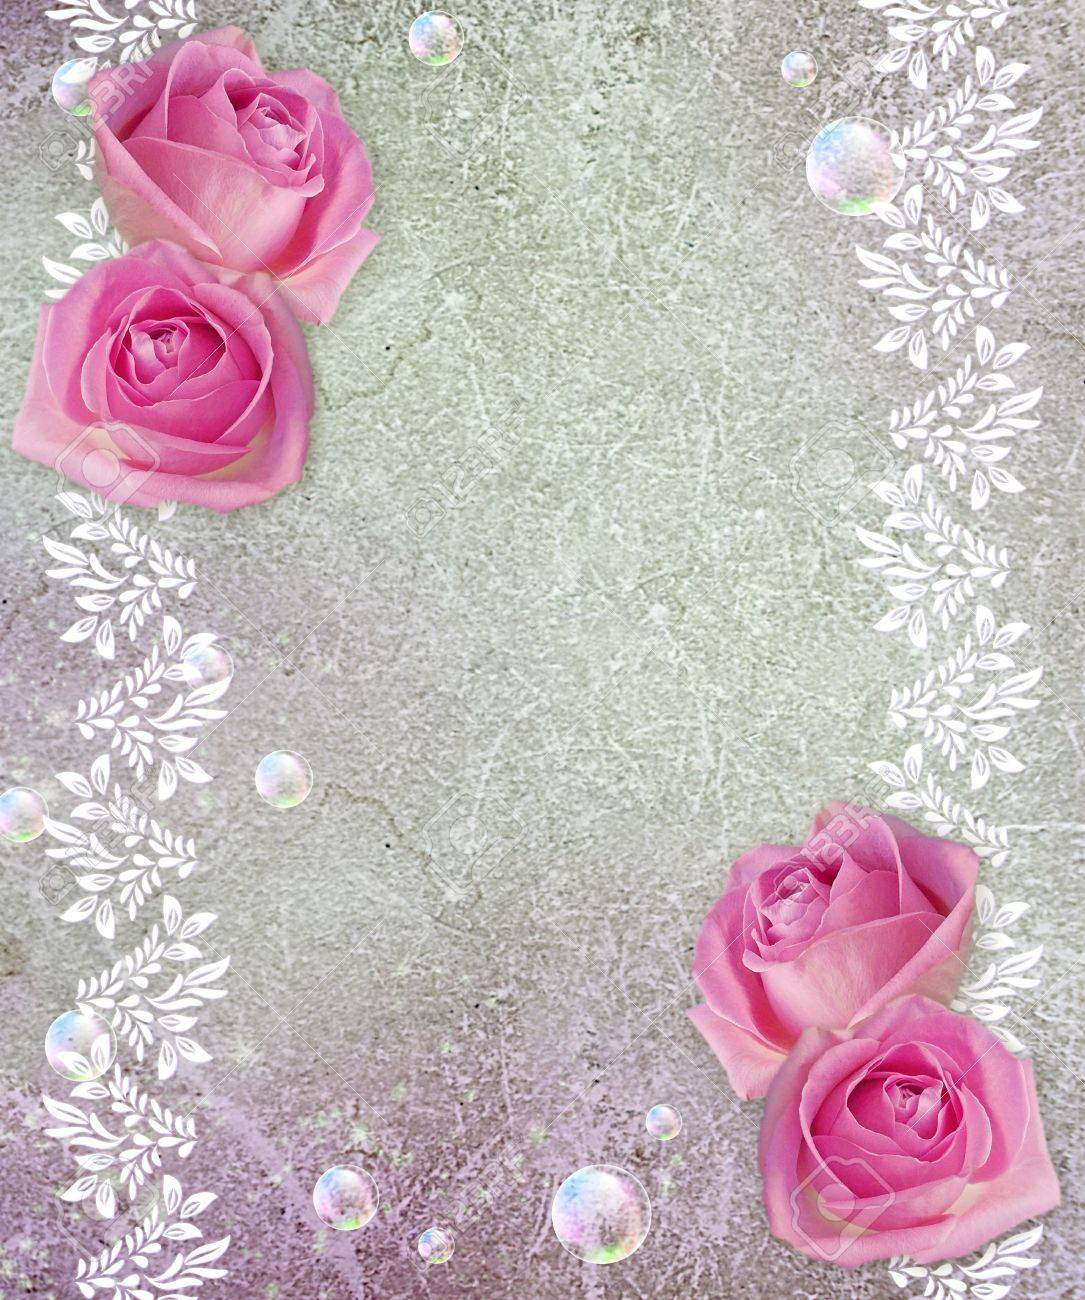 Old grunge background with roses - 14123042